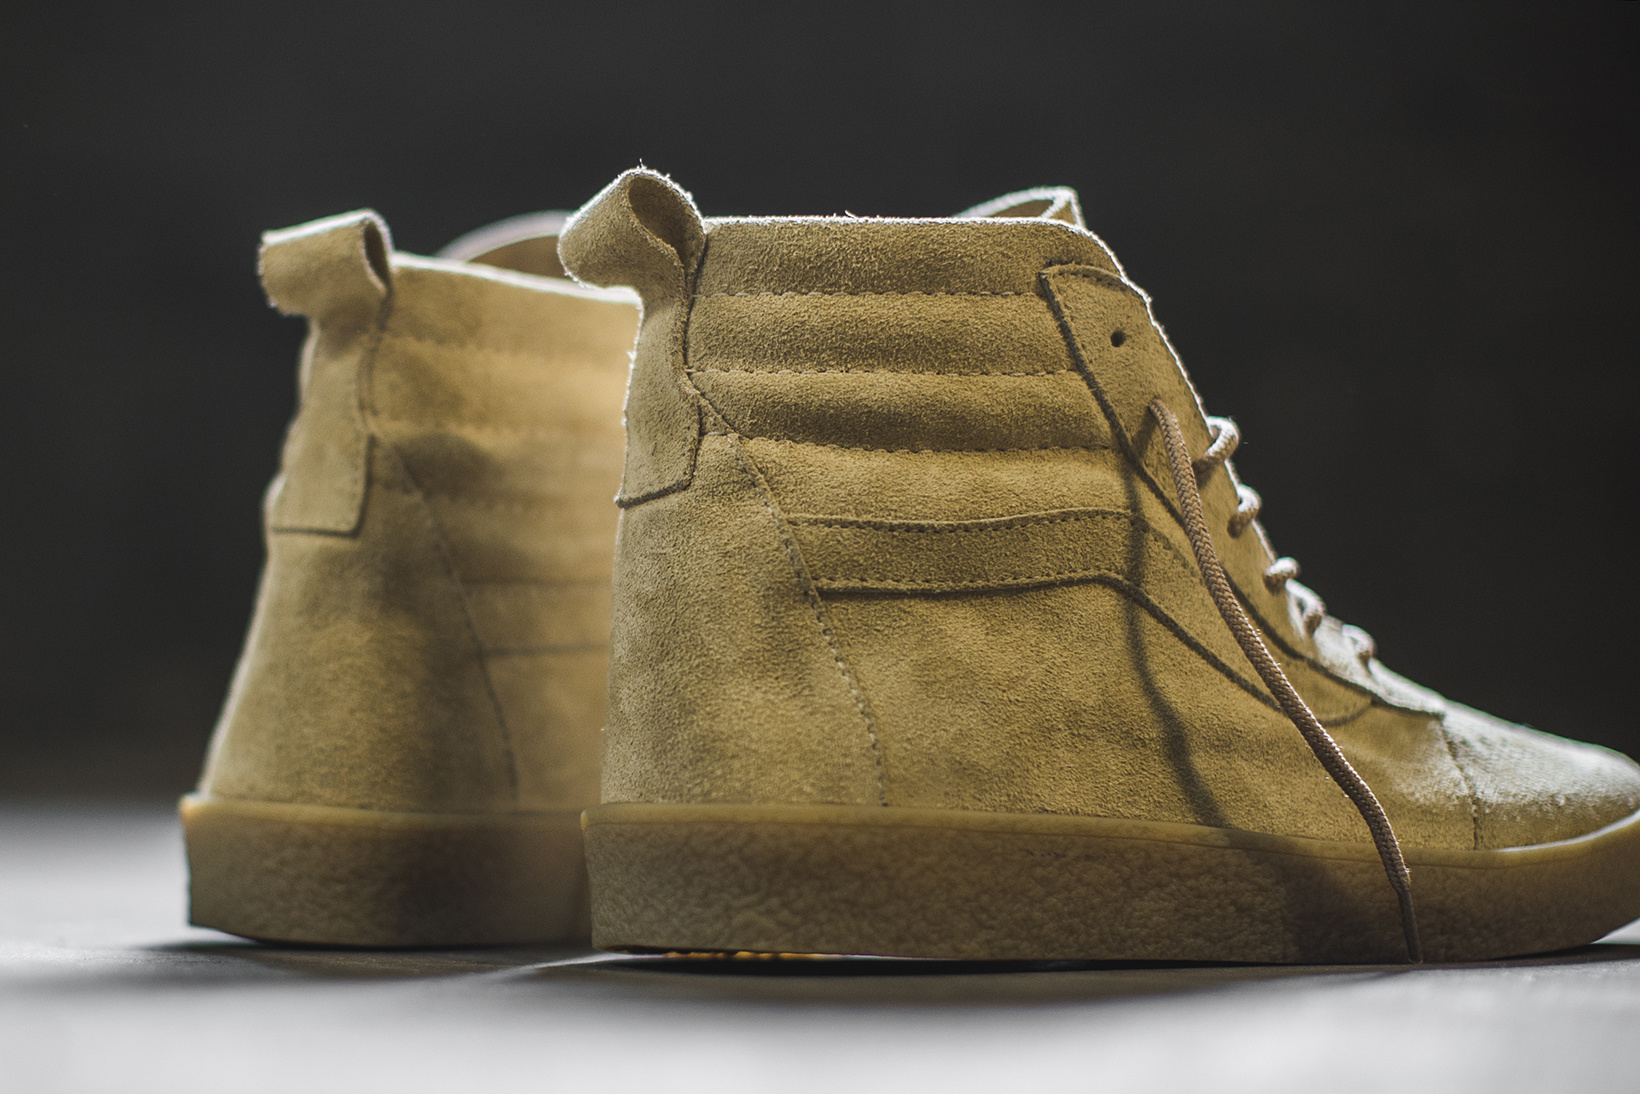 7d7be3192f0 The Shoe Surgeon Fuses the Yeezy Crepe Boot With a Vans Upper ...